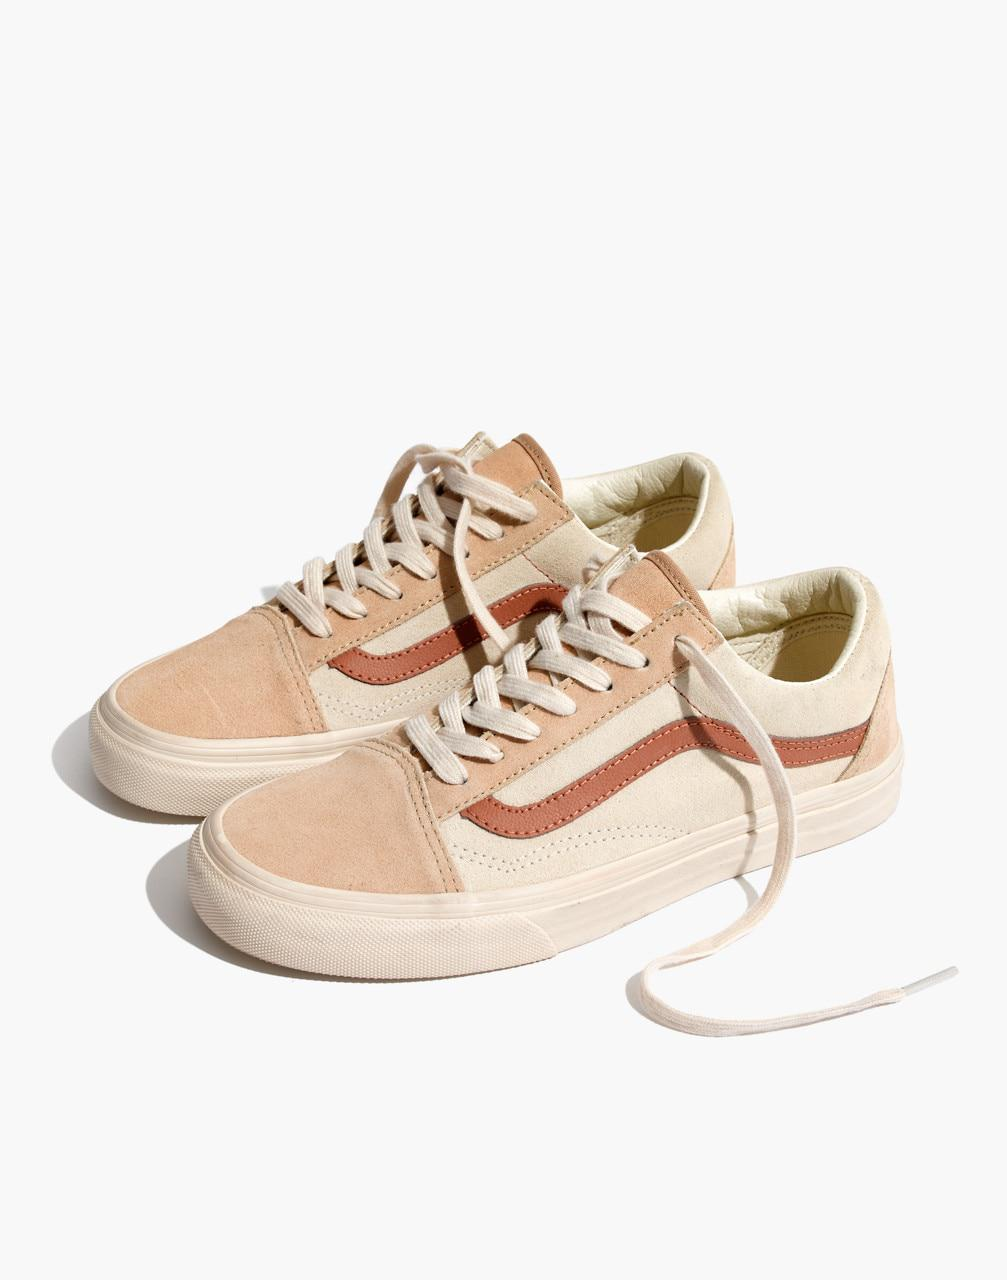 c0e24bdb120 Madewell X Vans Unisex Old Skool Lace-up Sneakers In Camel ...